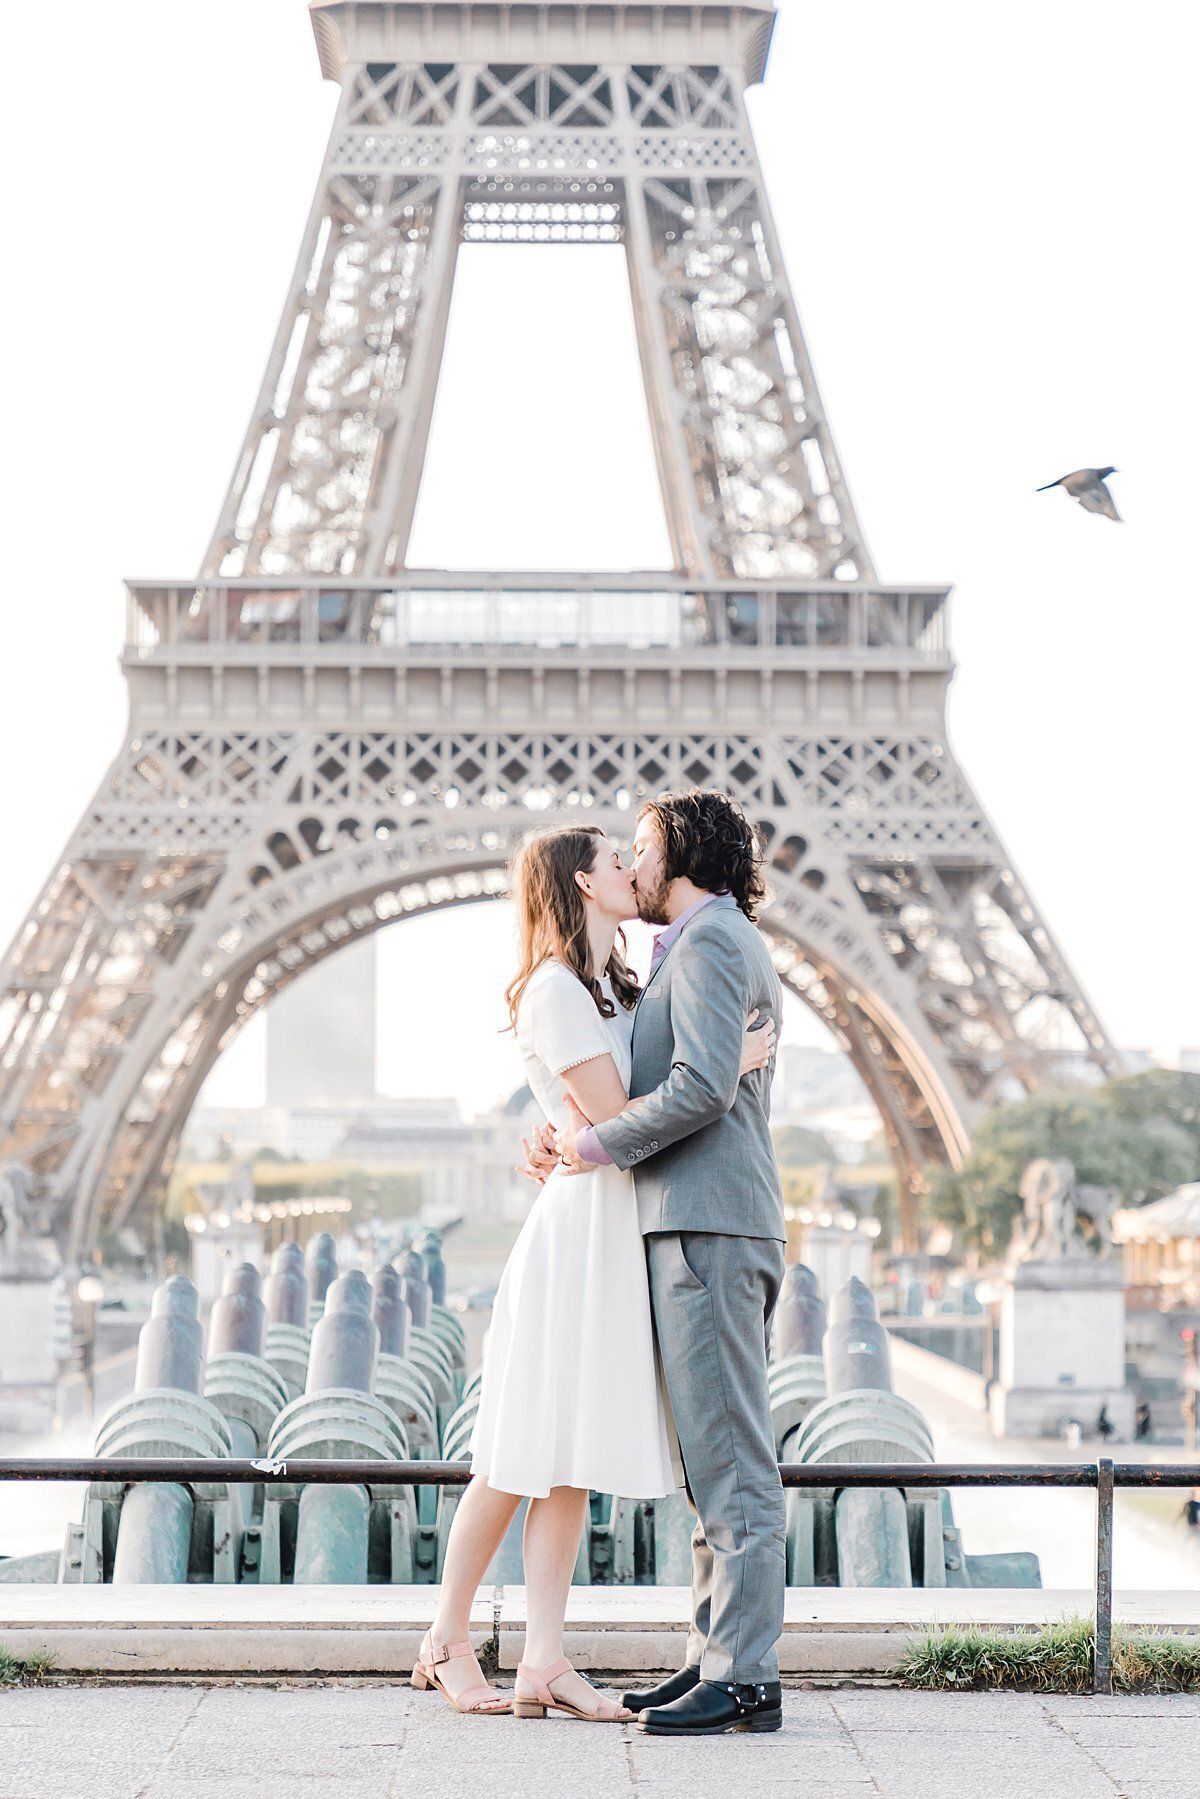 paris-honeymoon-photoshoot-5